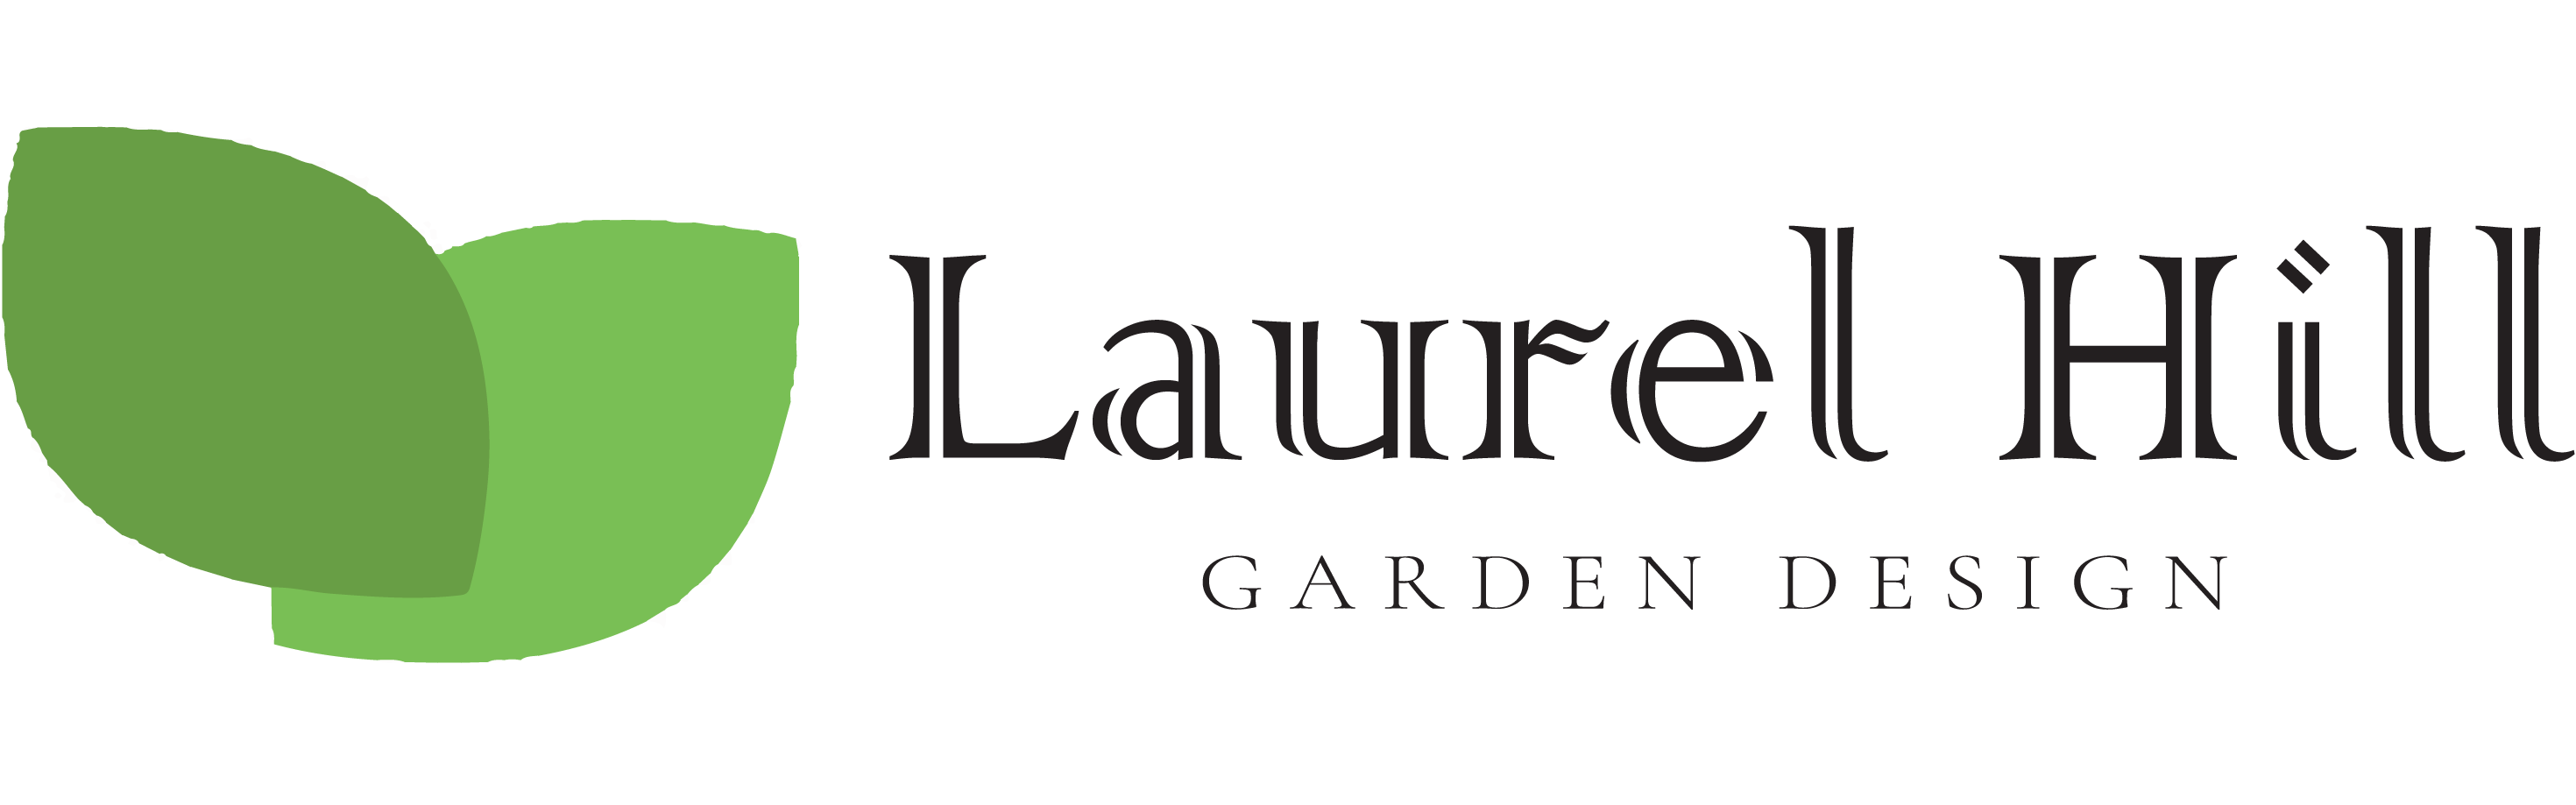 Laurel Hill Gardens